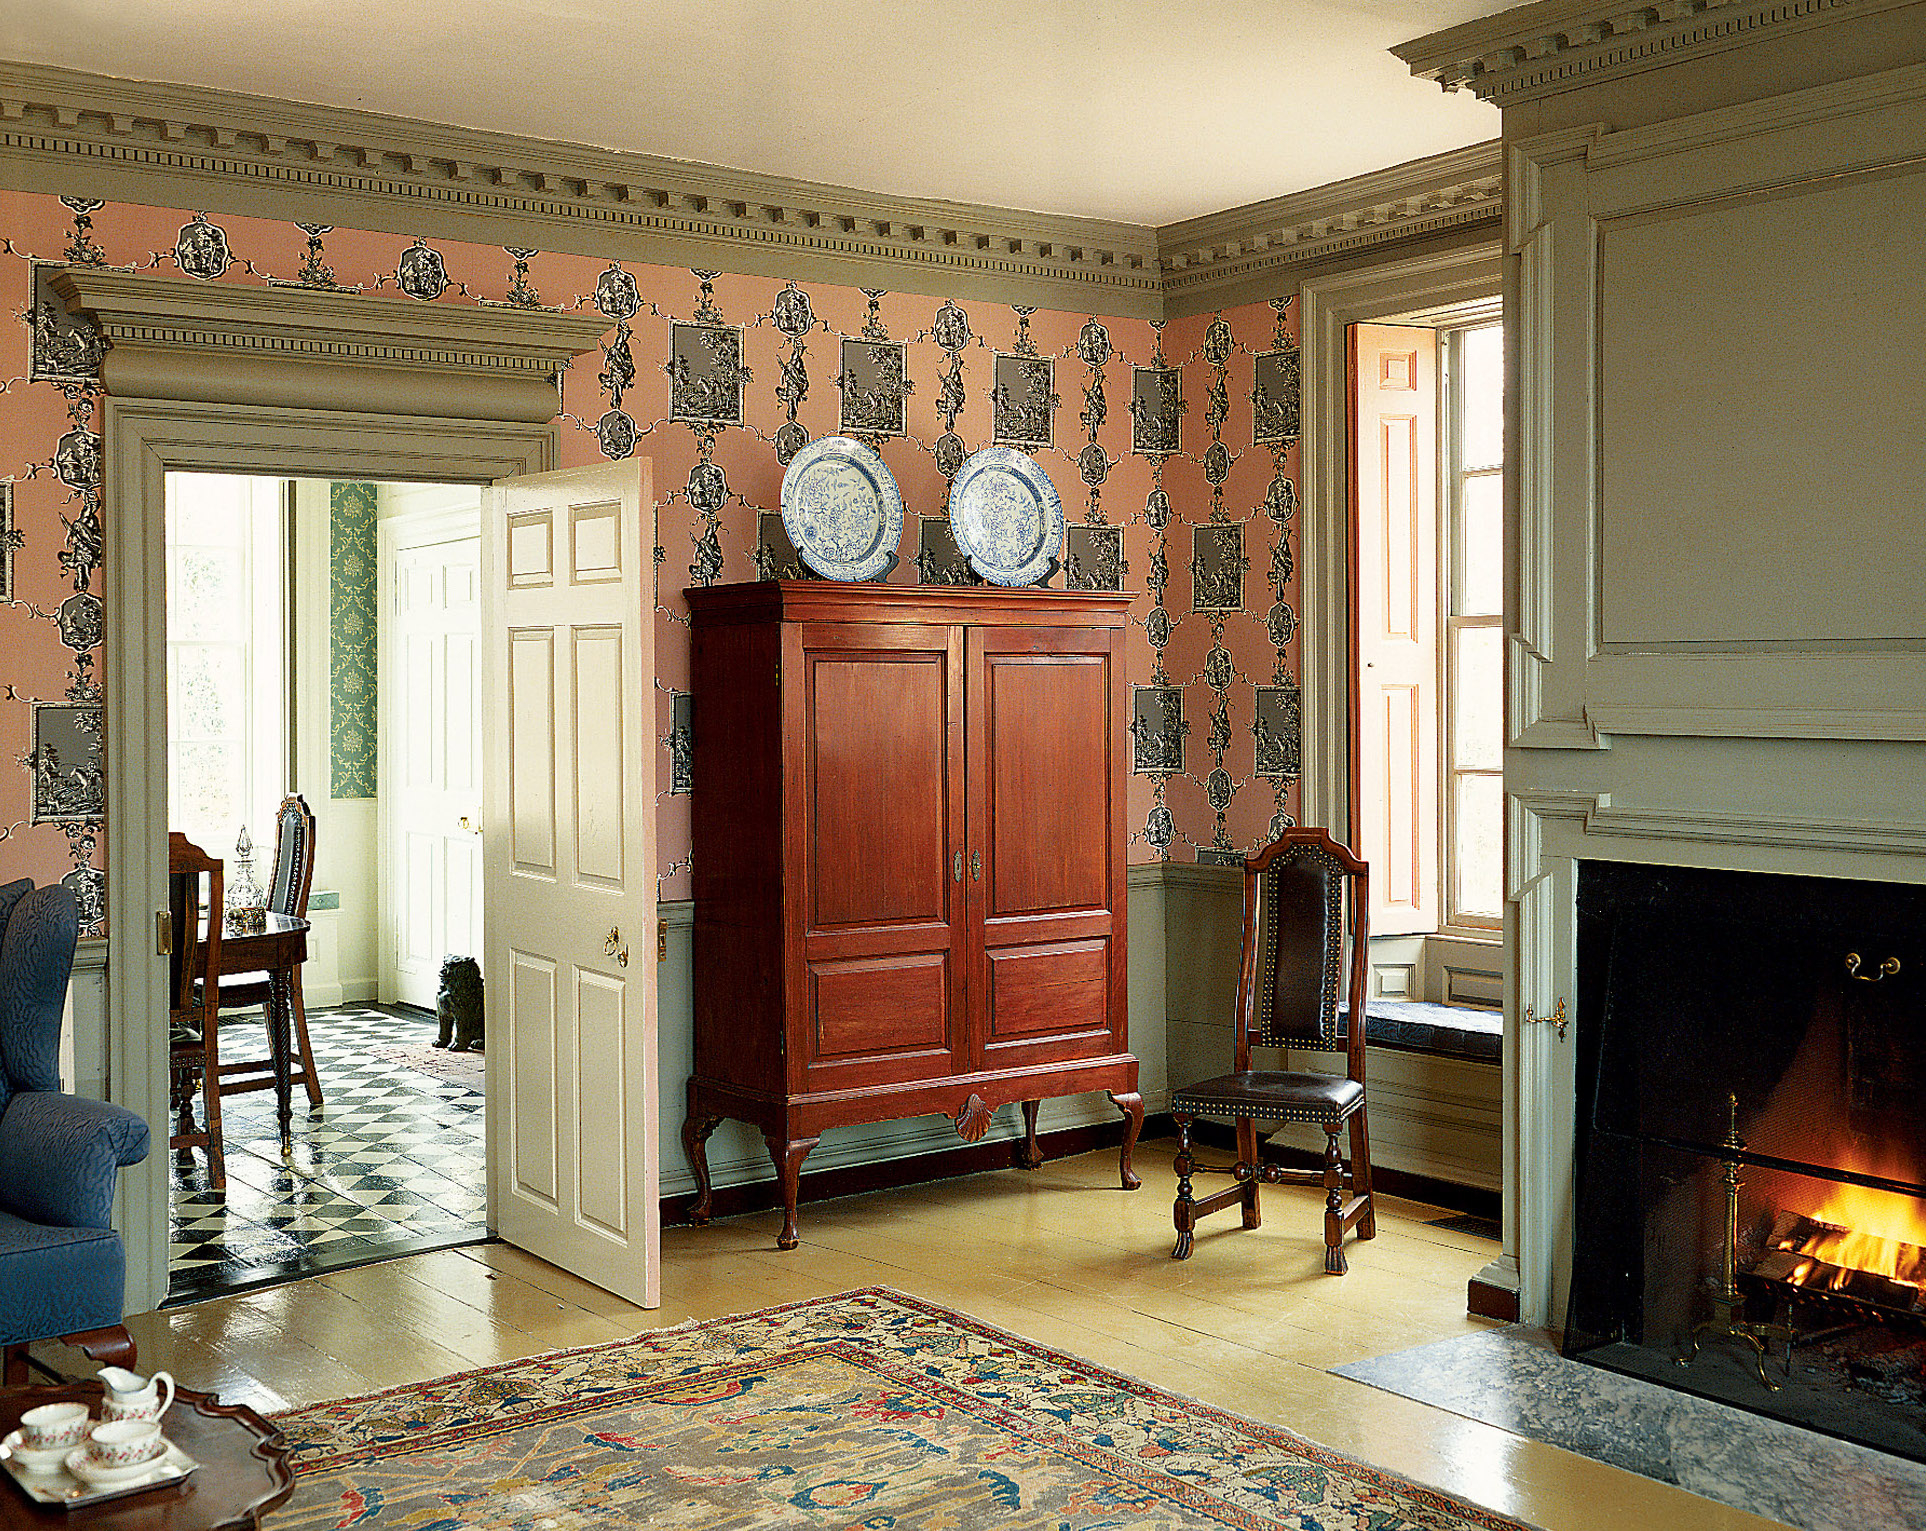 The elaborate Lady Pepperrell House (1760) at Kittery Point, Maine, was a favorite study piece for architects of the Colonial Revival. Colors and the English paper are authentic.